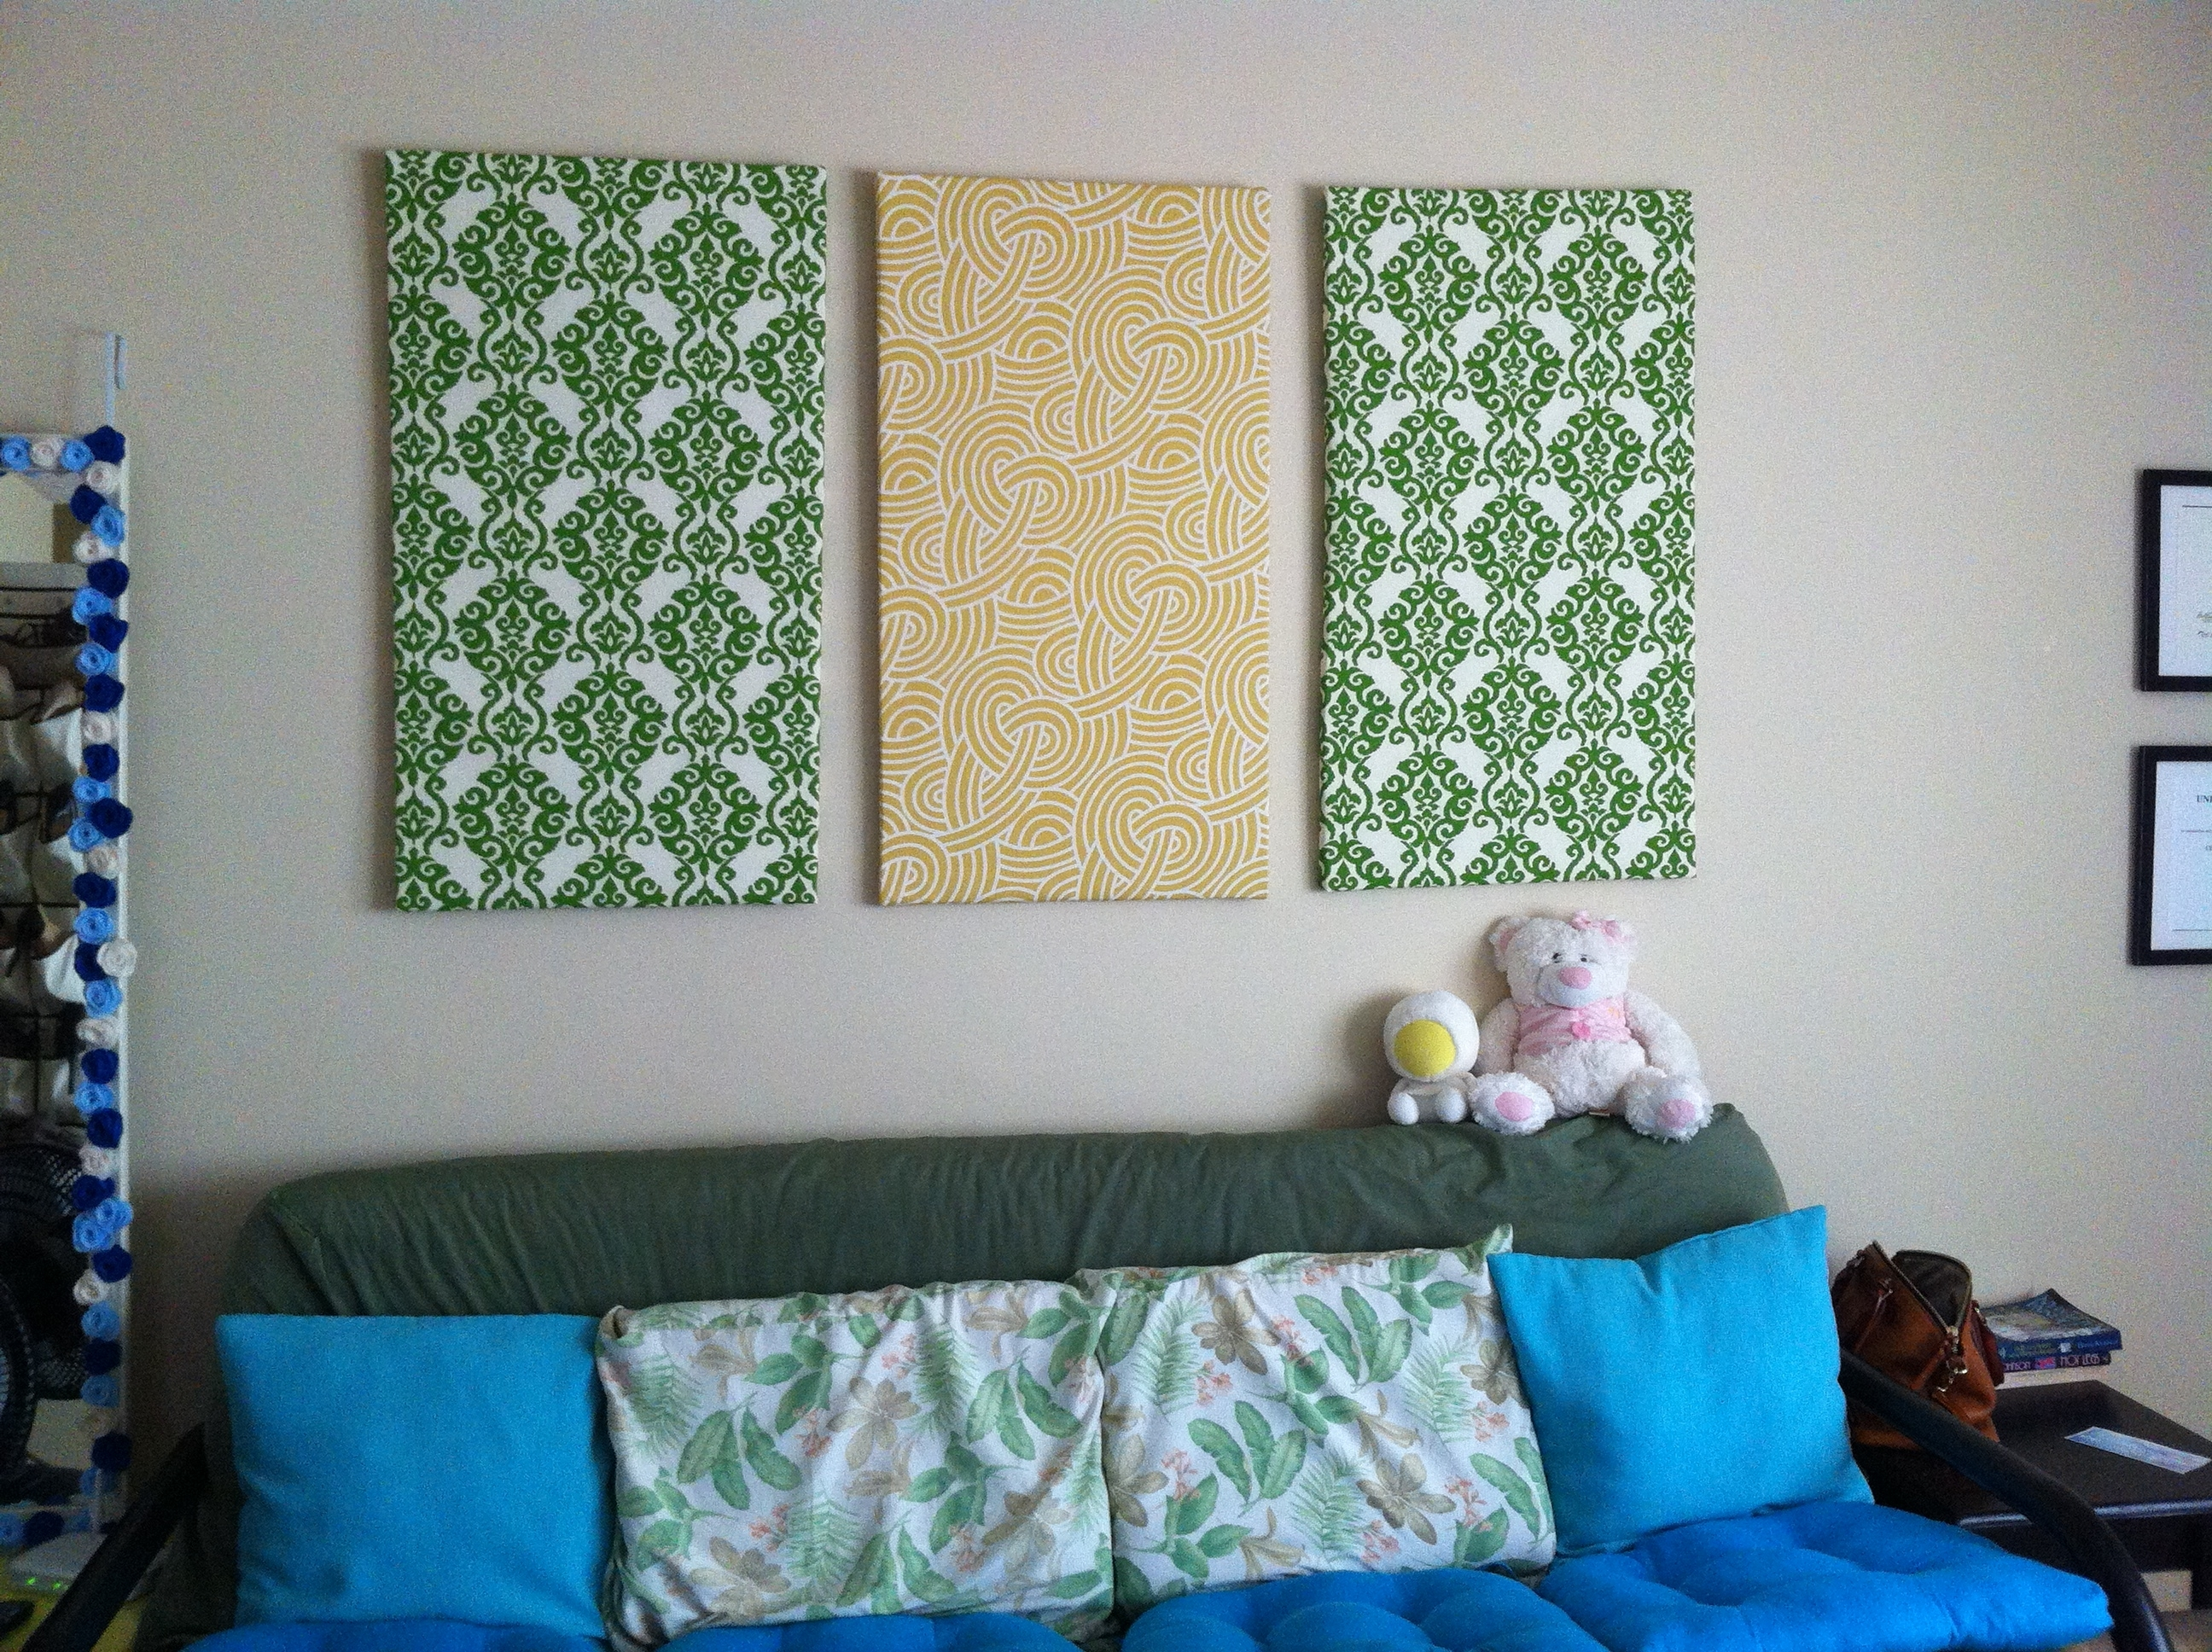 Art: Fabric Wall Art Diy Within Most Recently Released Diy Large Fabric Wall Art (View 13 of 15)